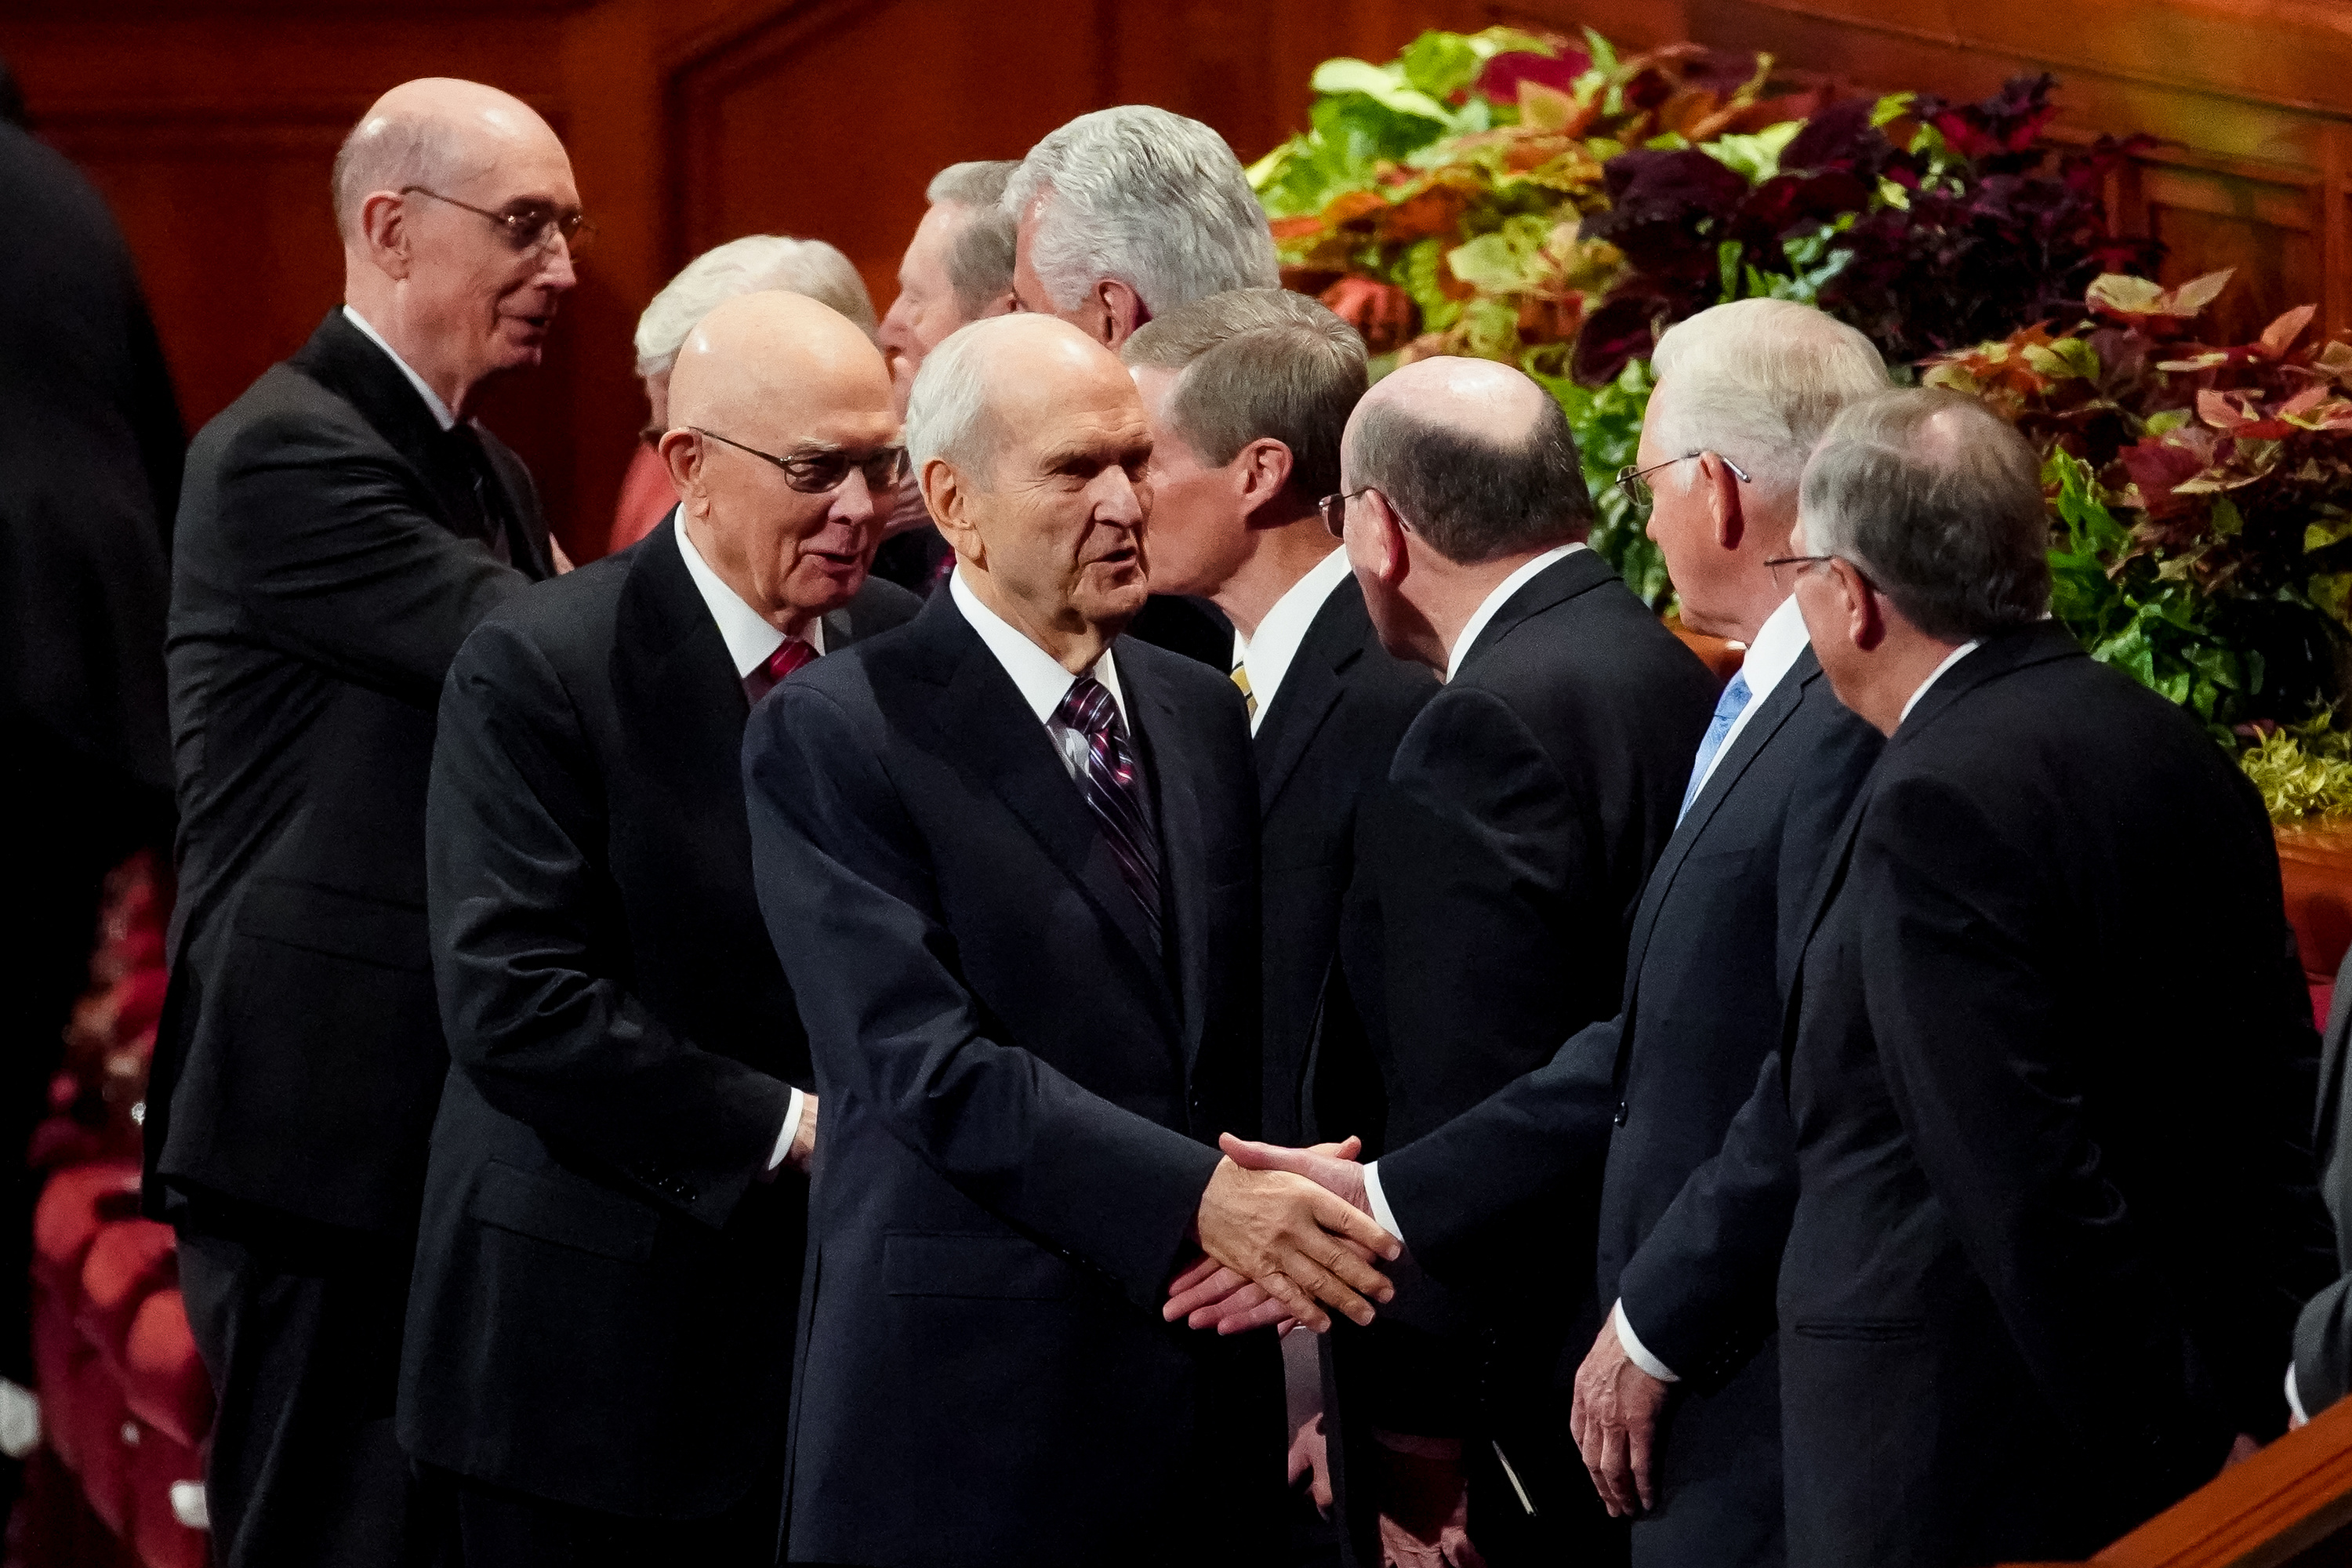 President Russell M. Nelson, third from left, President Dallin H. Oaks, first counselor in the First Presidency, second from left, and President Henry B. Eyring, second counselor in the First Presidency, left, shake hands with members of the Quorum of the Twelve Apostles at the conclusion of the Saturday morning session of the 189th Semiannual General Conference of The Church of Jesus Christ of Latter-day Saints in the Conference Center in Salt Lake City on Saturday, Oct. 5, 2019.